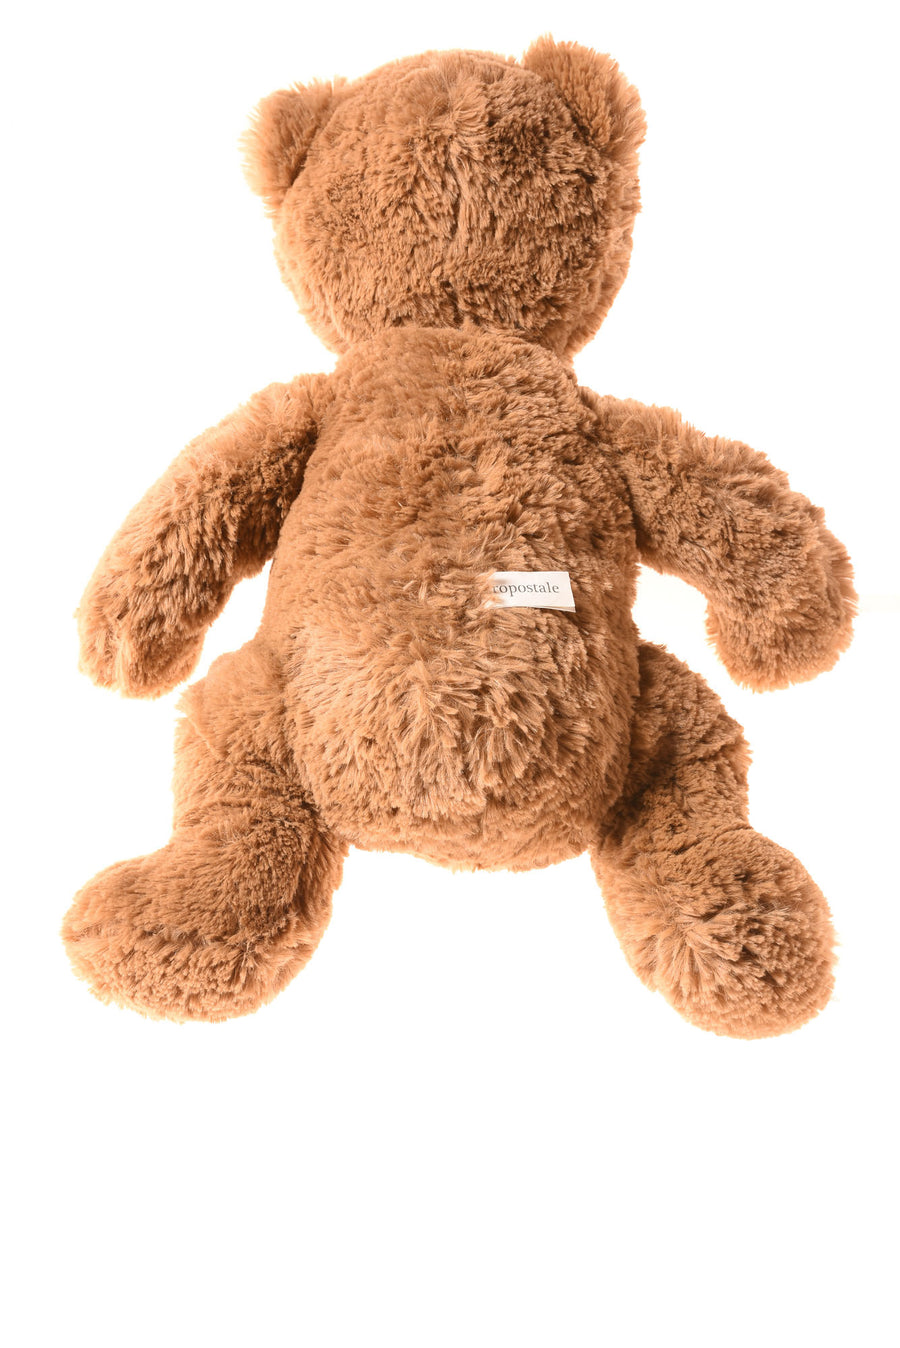 Stuffed Animal By Aeropostale